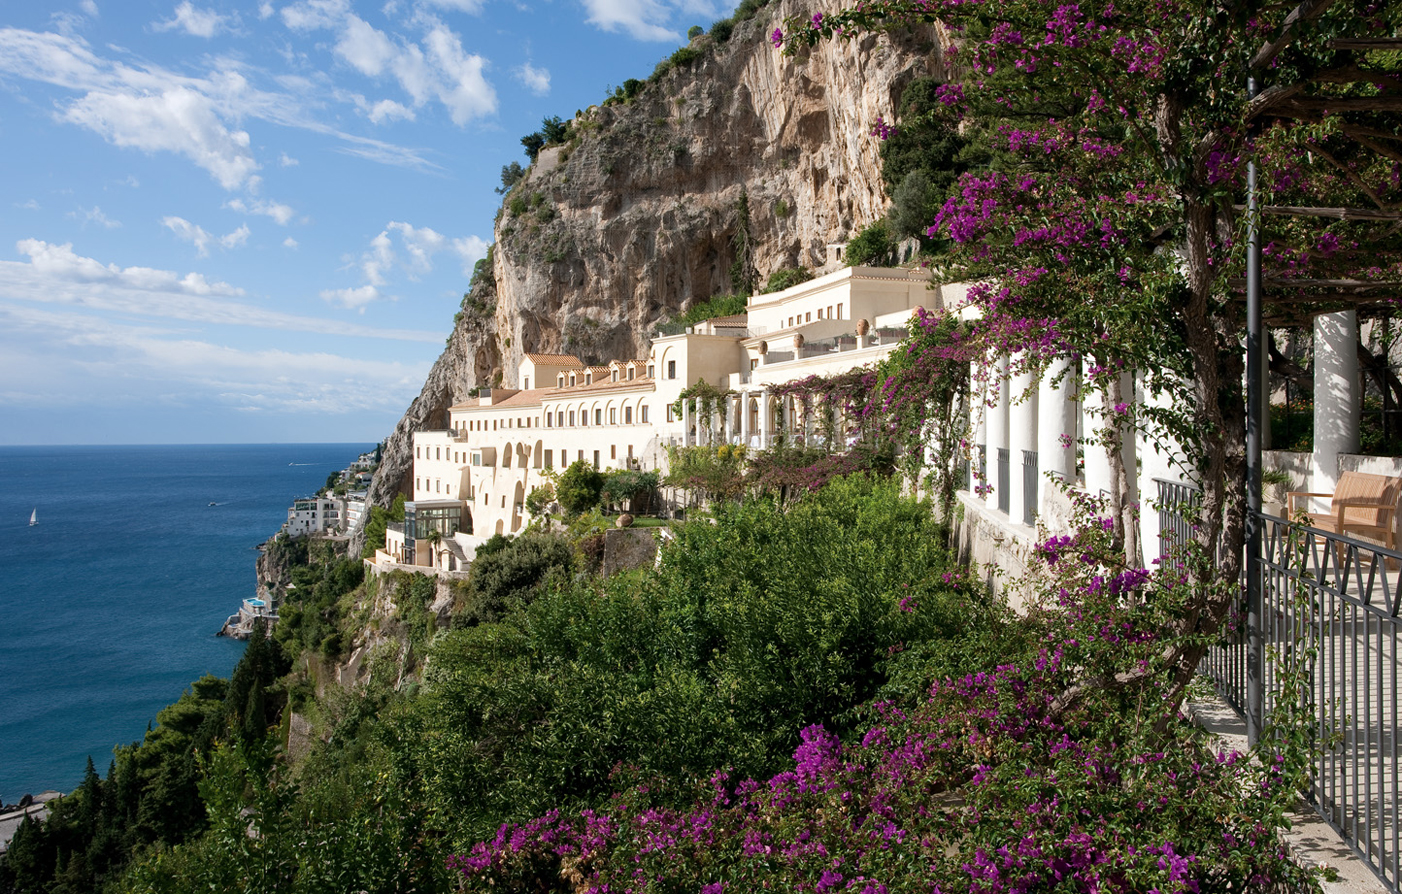 Nh collection grand hotel convento di amalfi luxury for Convento di amalfi